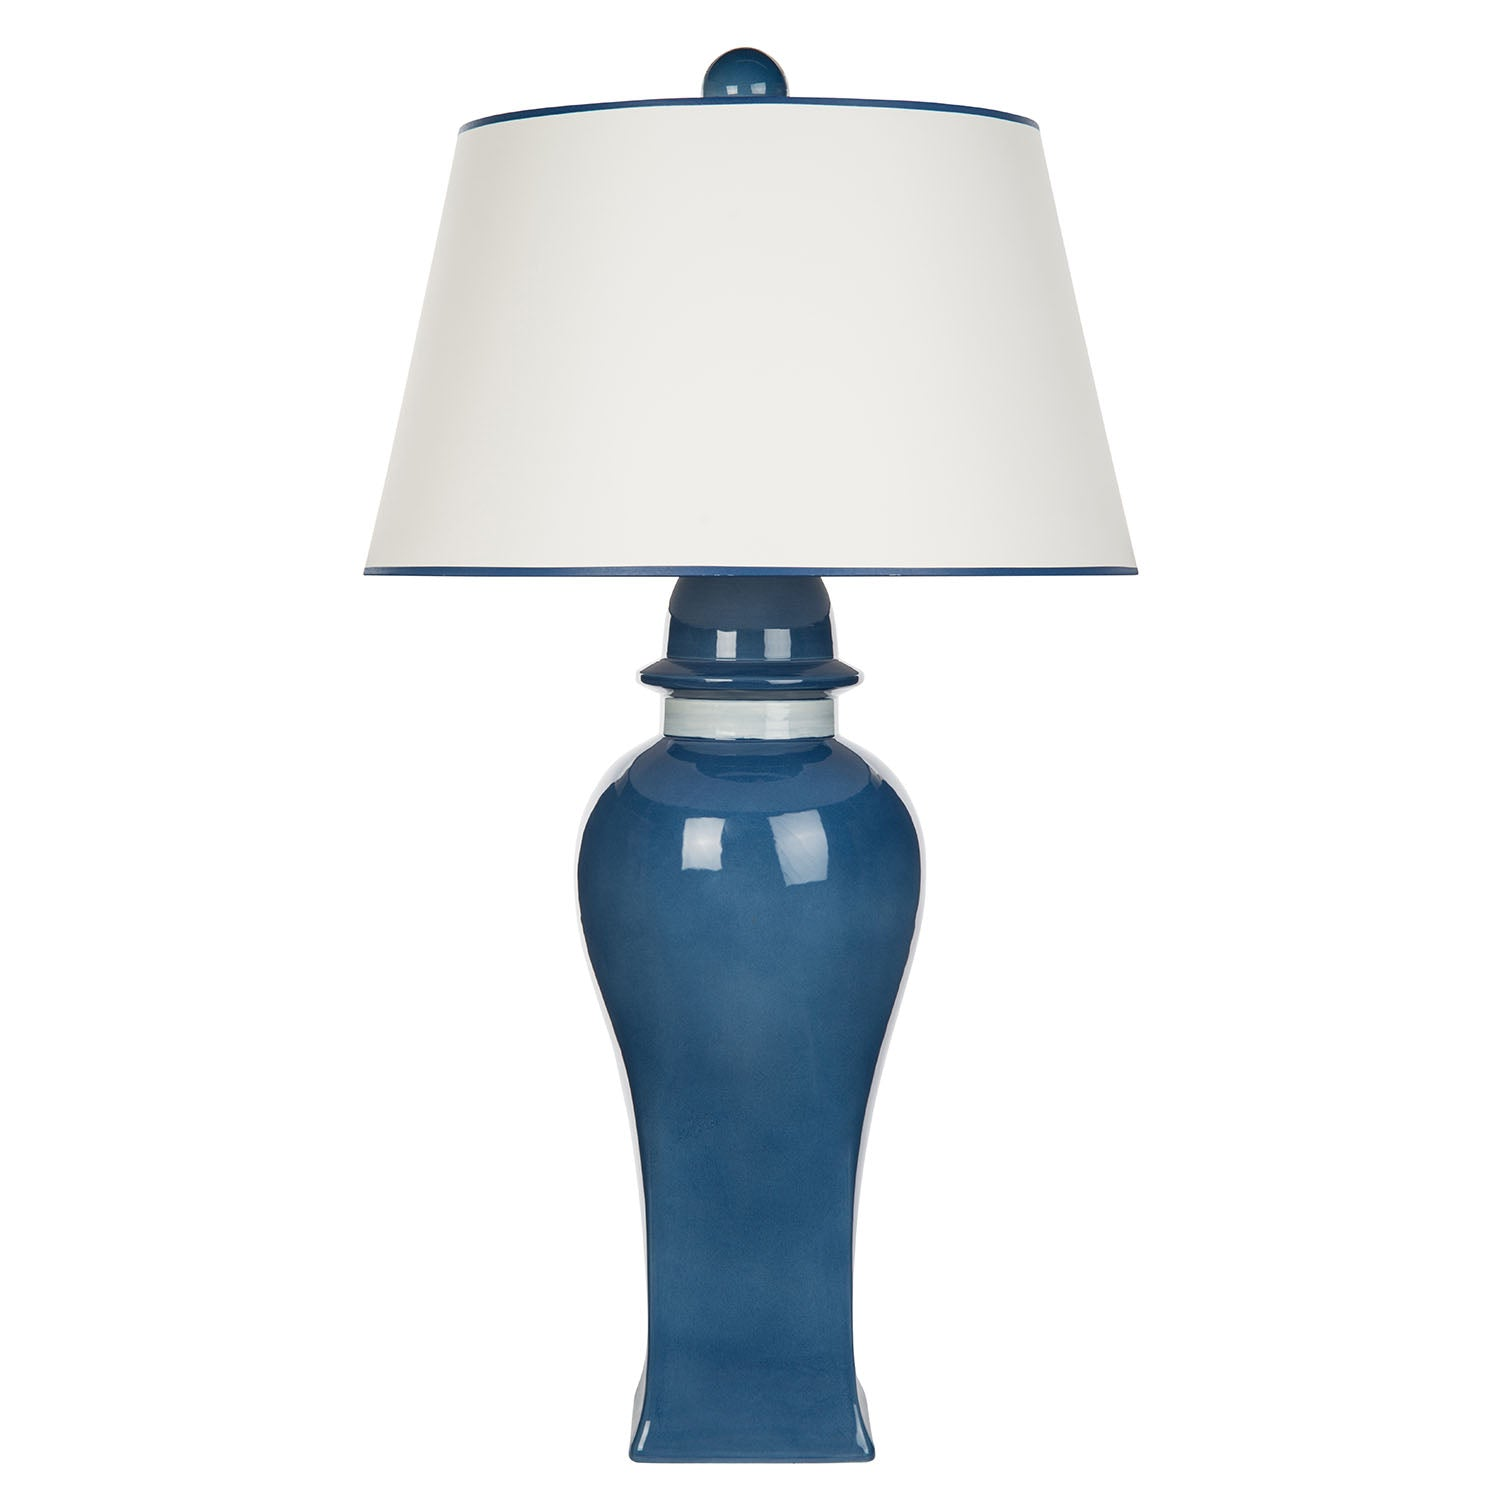 Winborne Blue Table Lamp by shopbarclaybutera